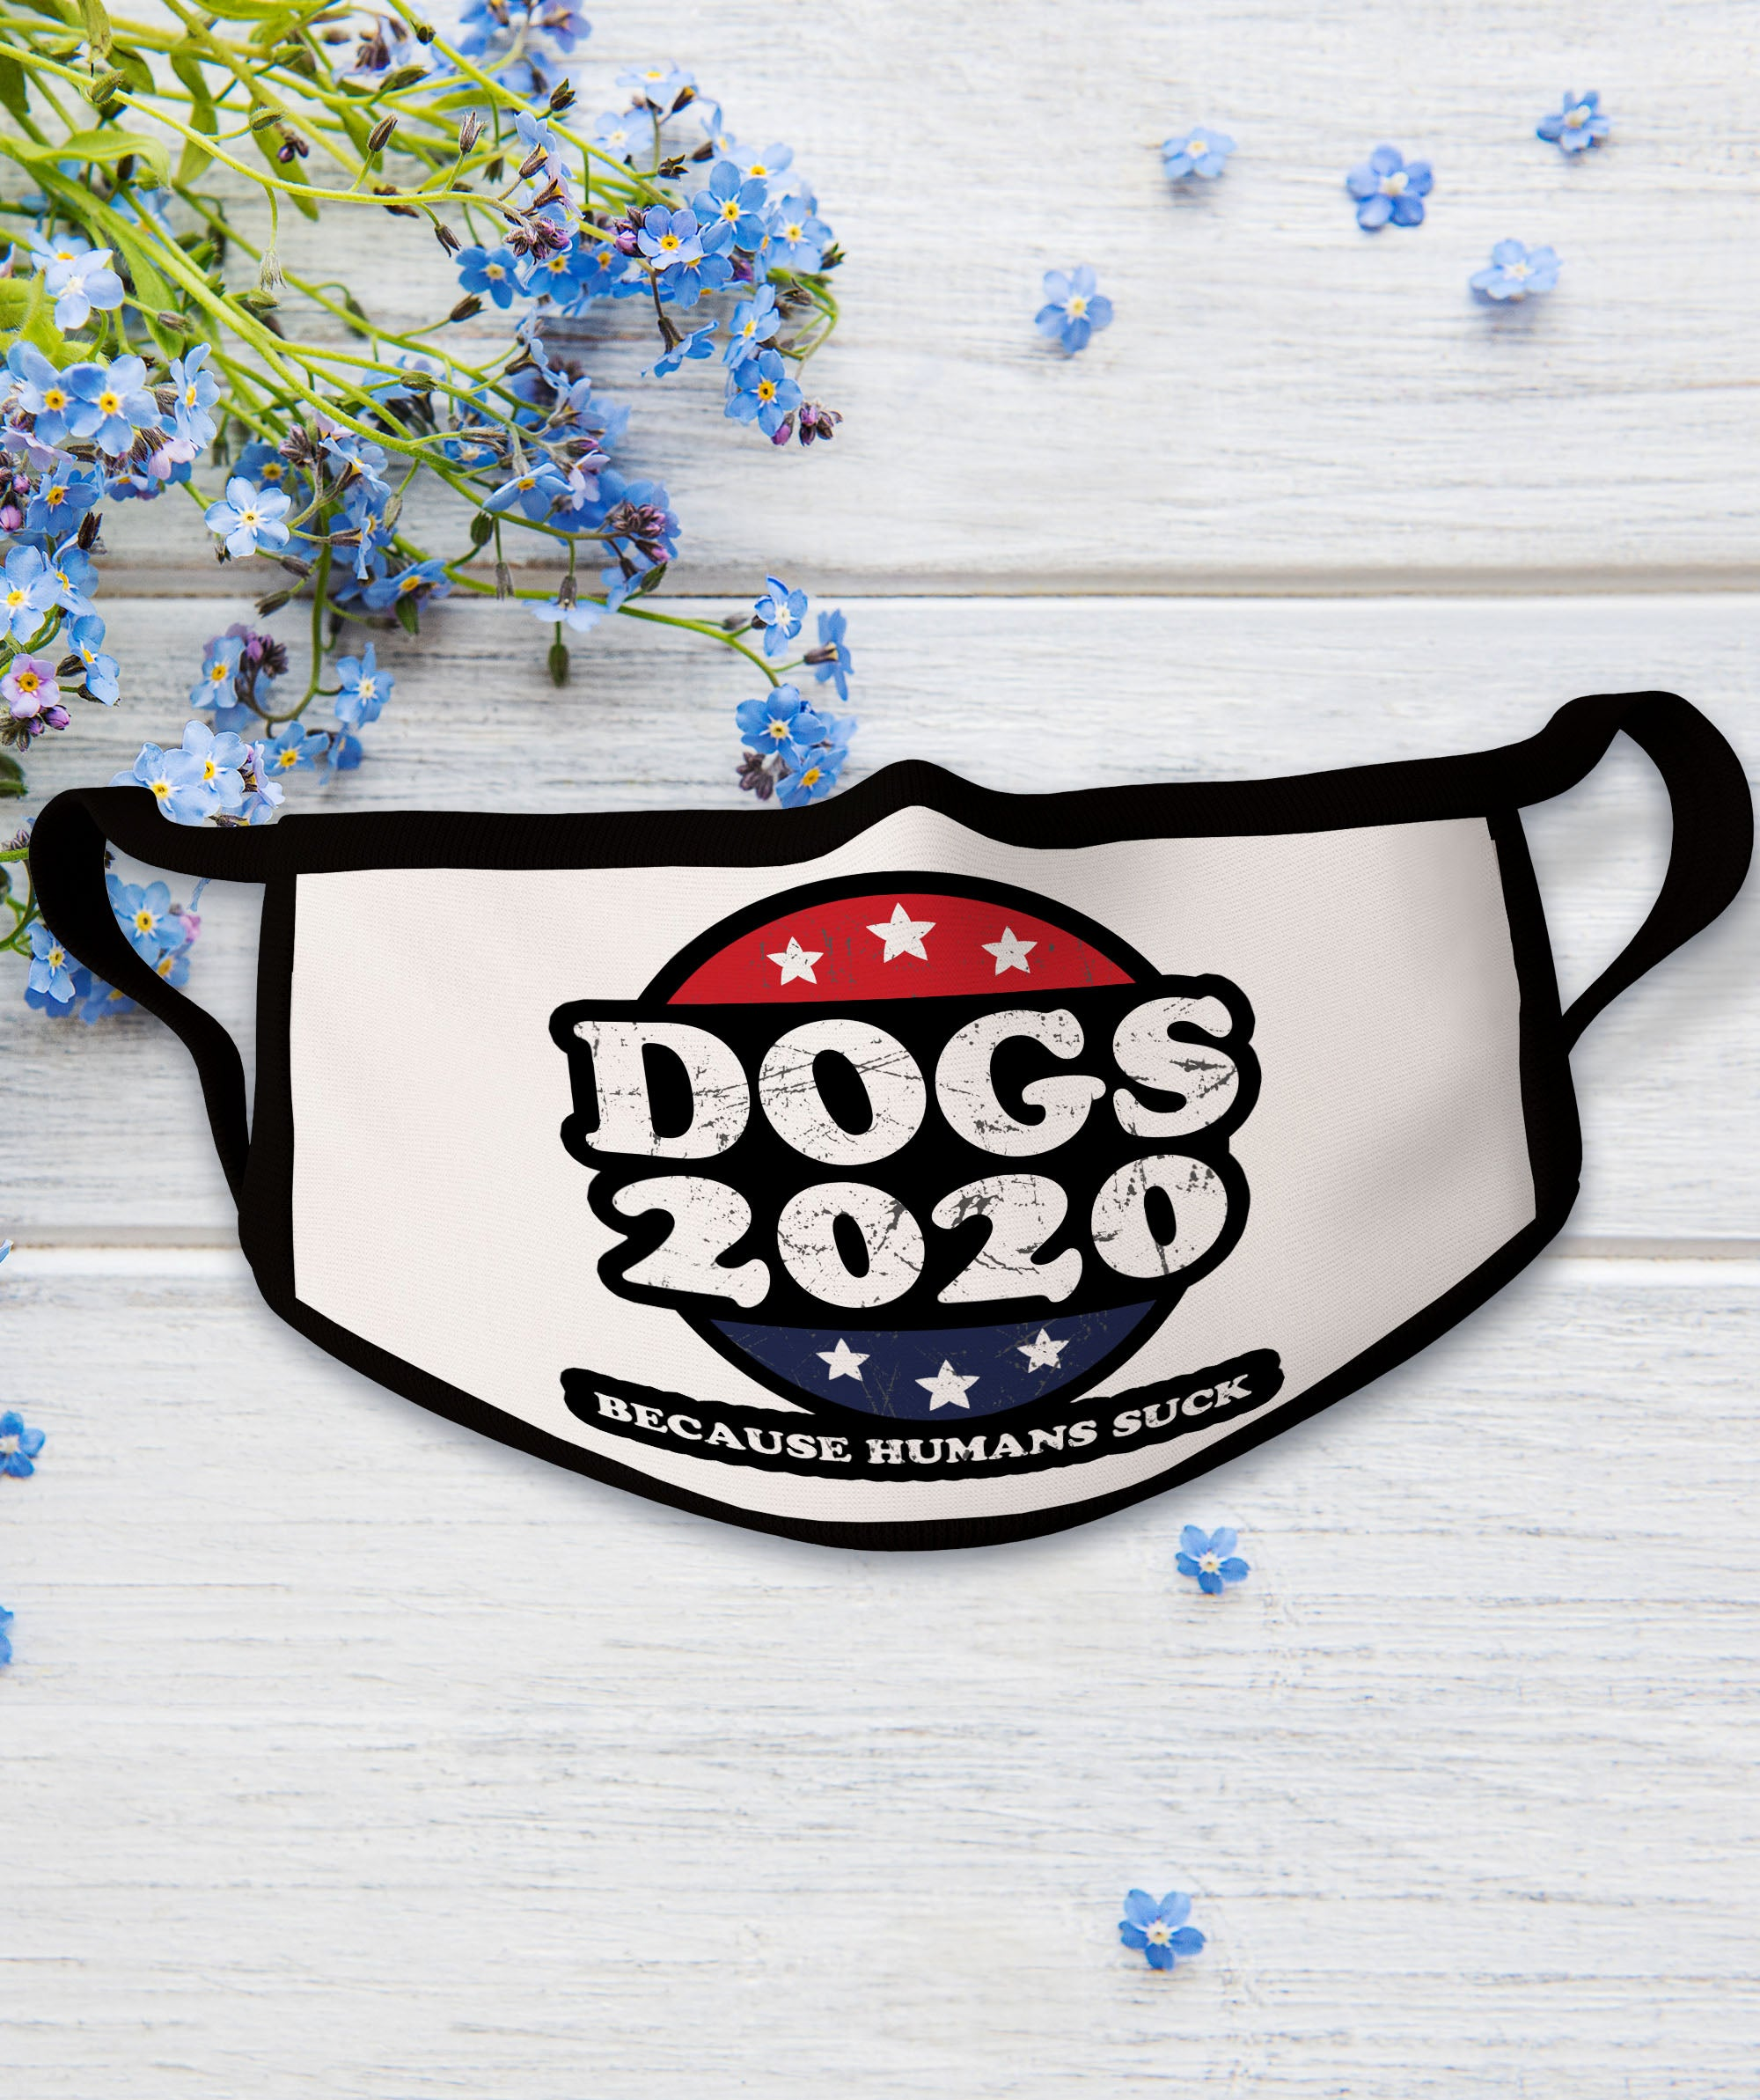 Dogs 2020 Because Humans Suck - Face Mask